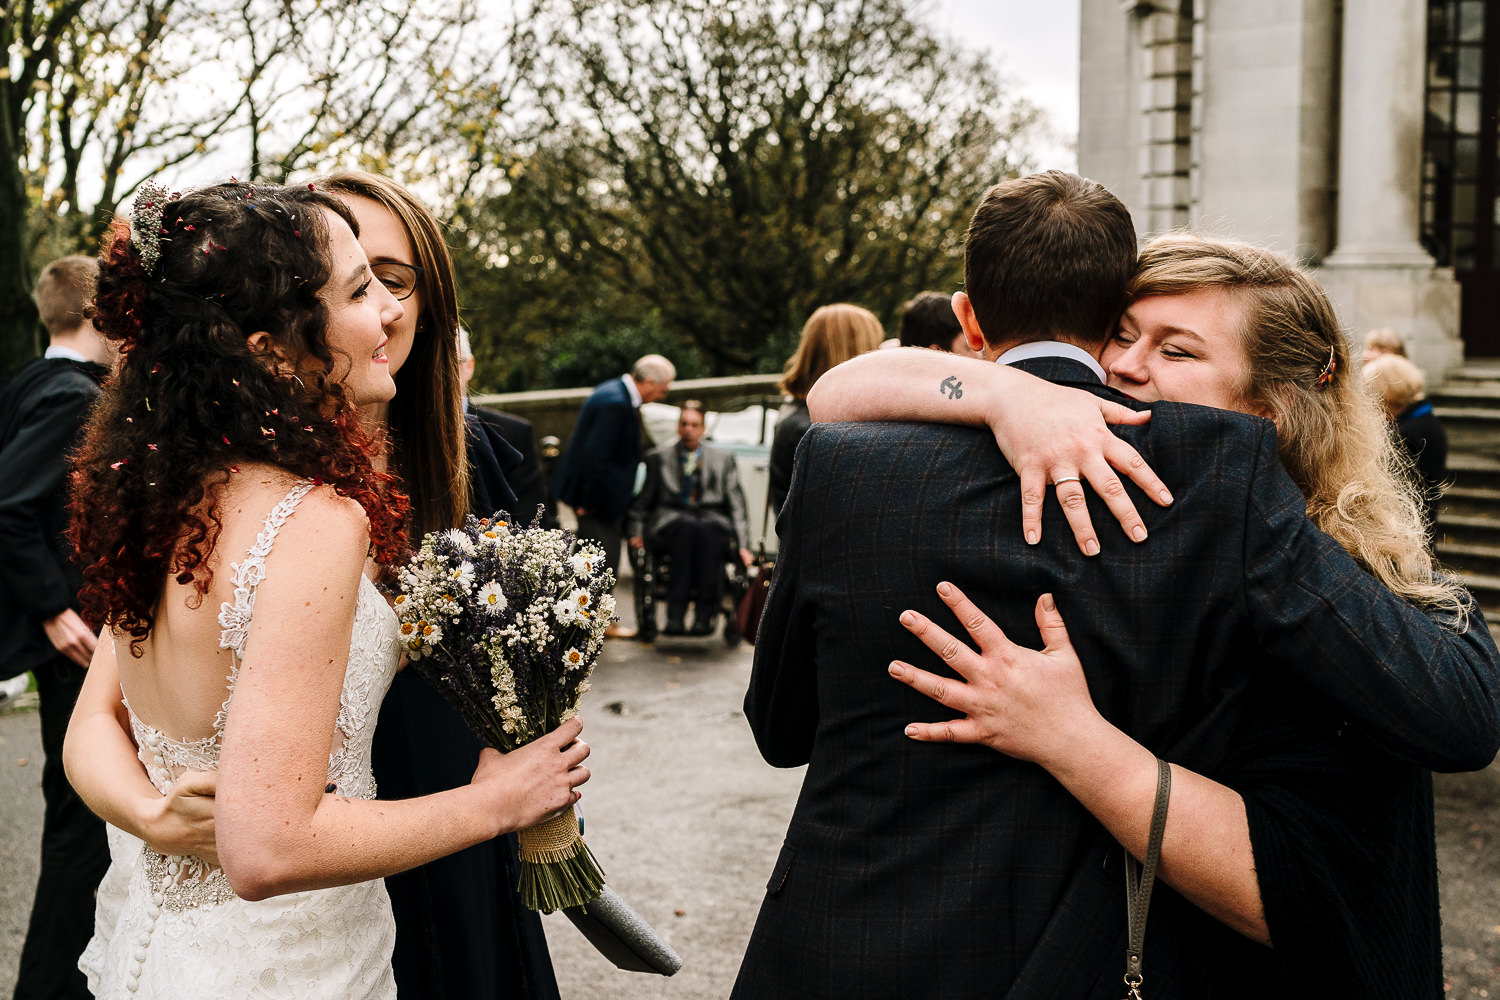 hugs from couples after the ceremony